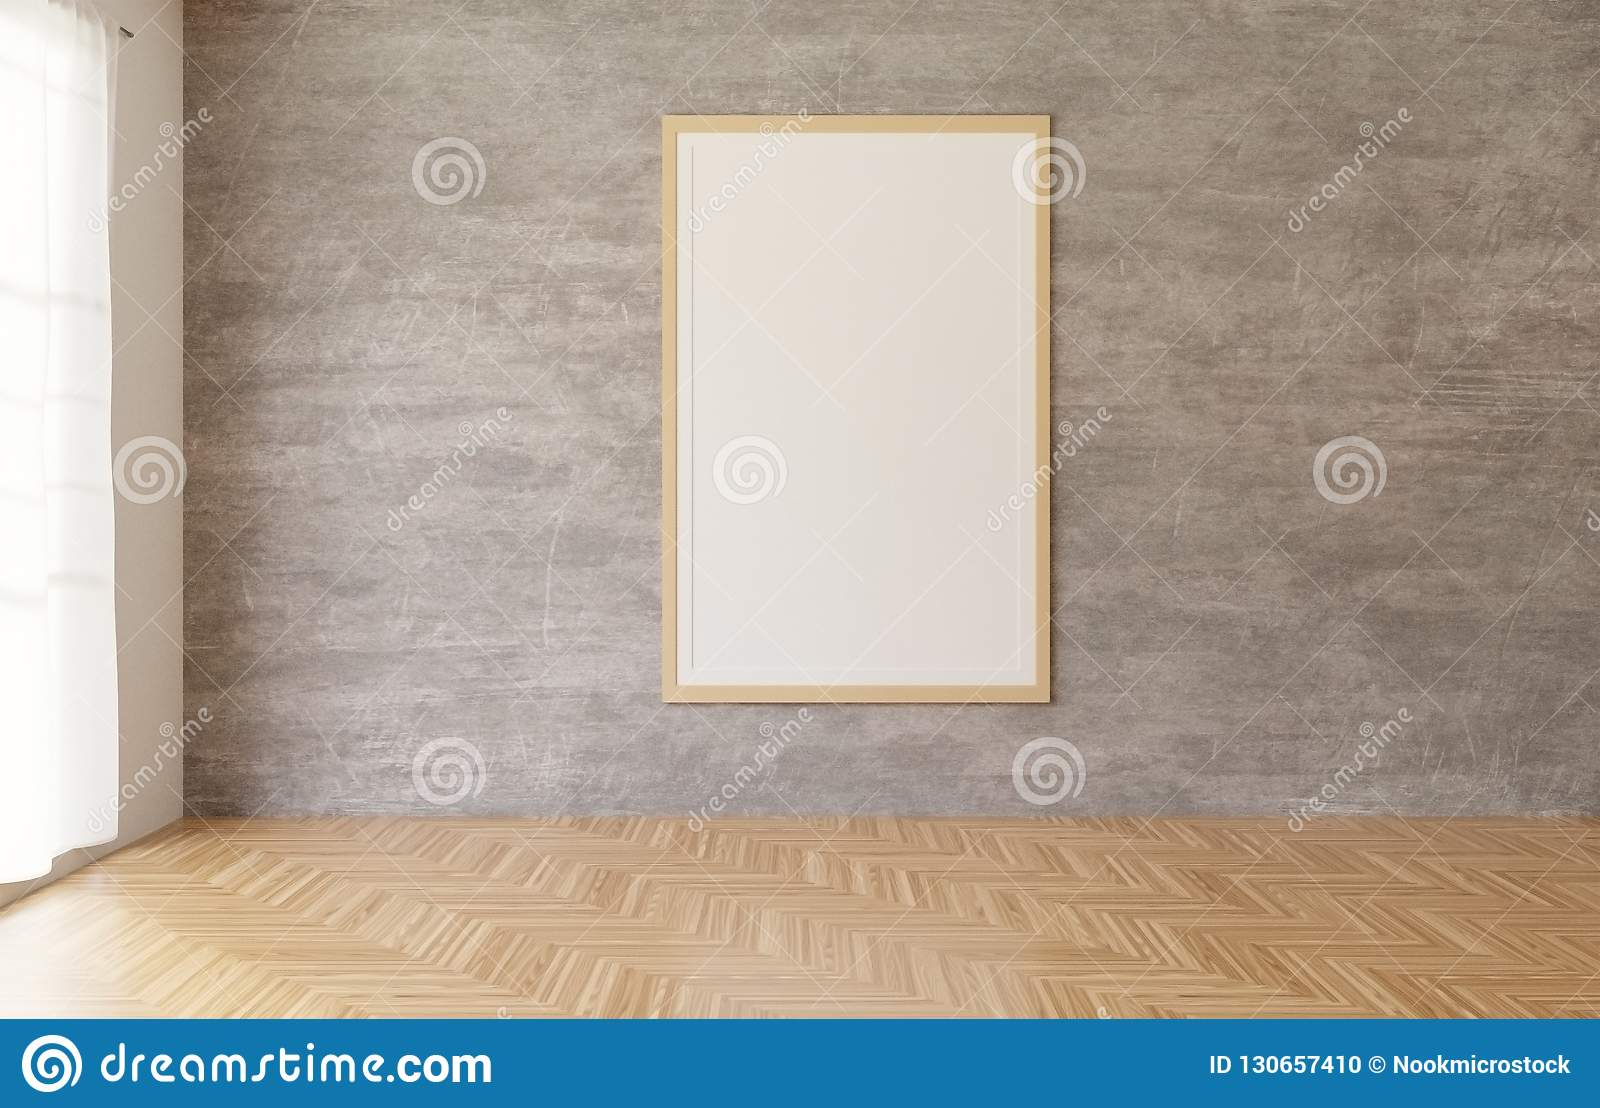 3d rendering White poster and frame hanging on the concrete wall background in the room,wooden floor,white Curtain